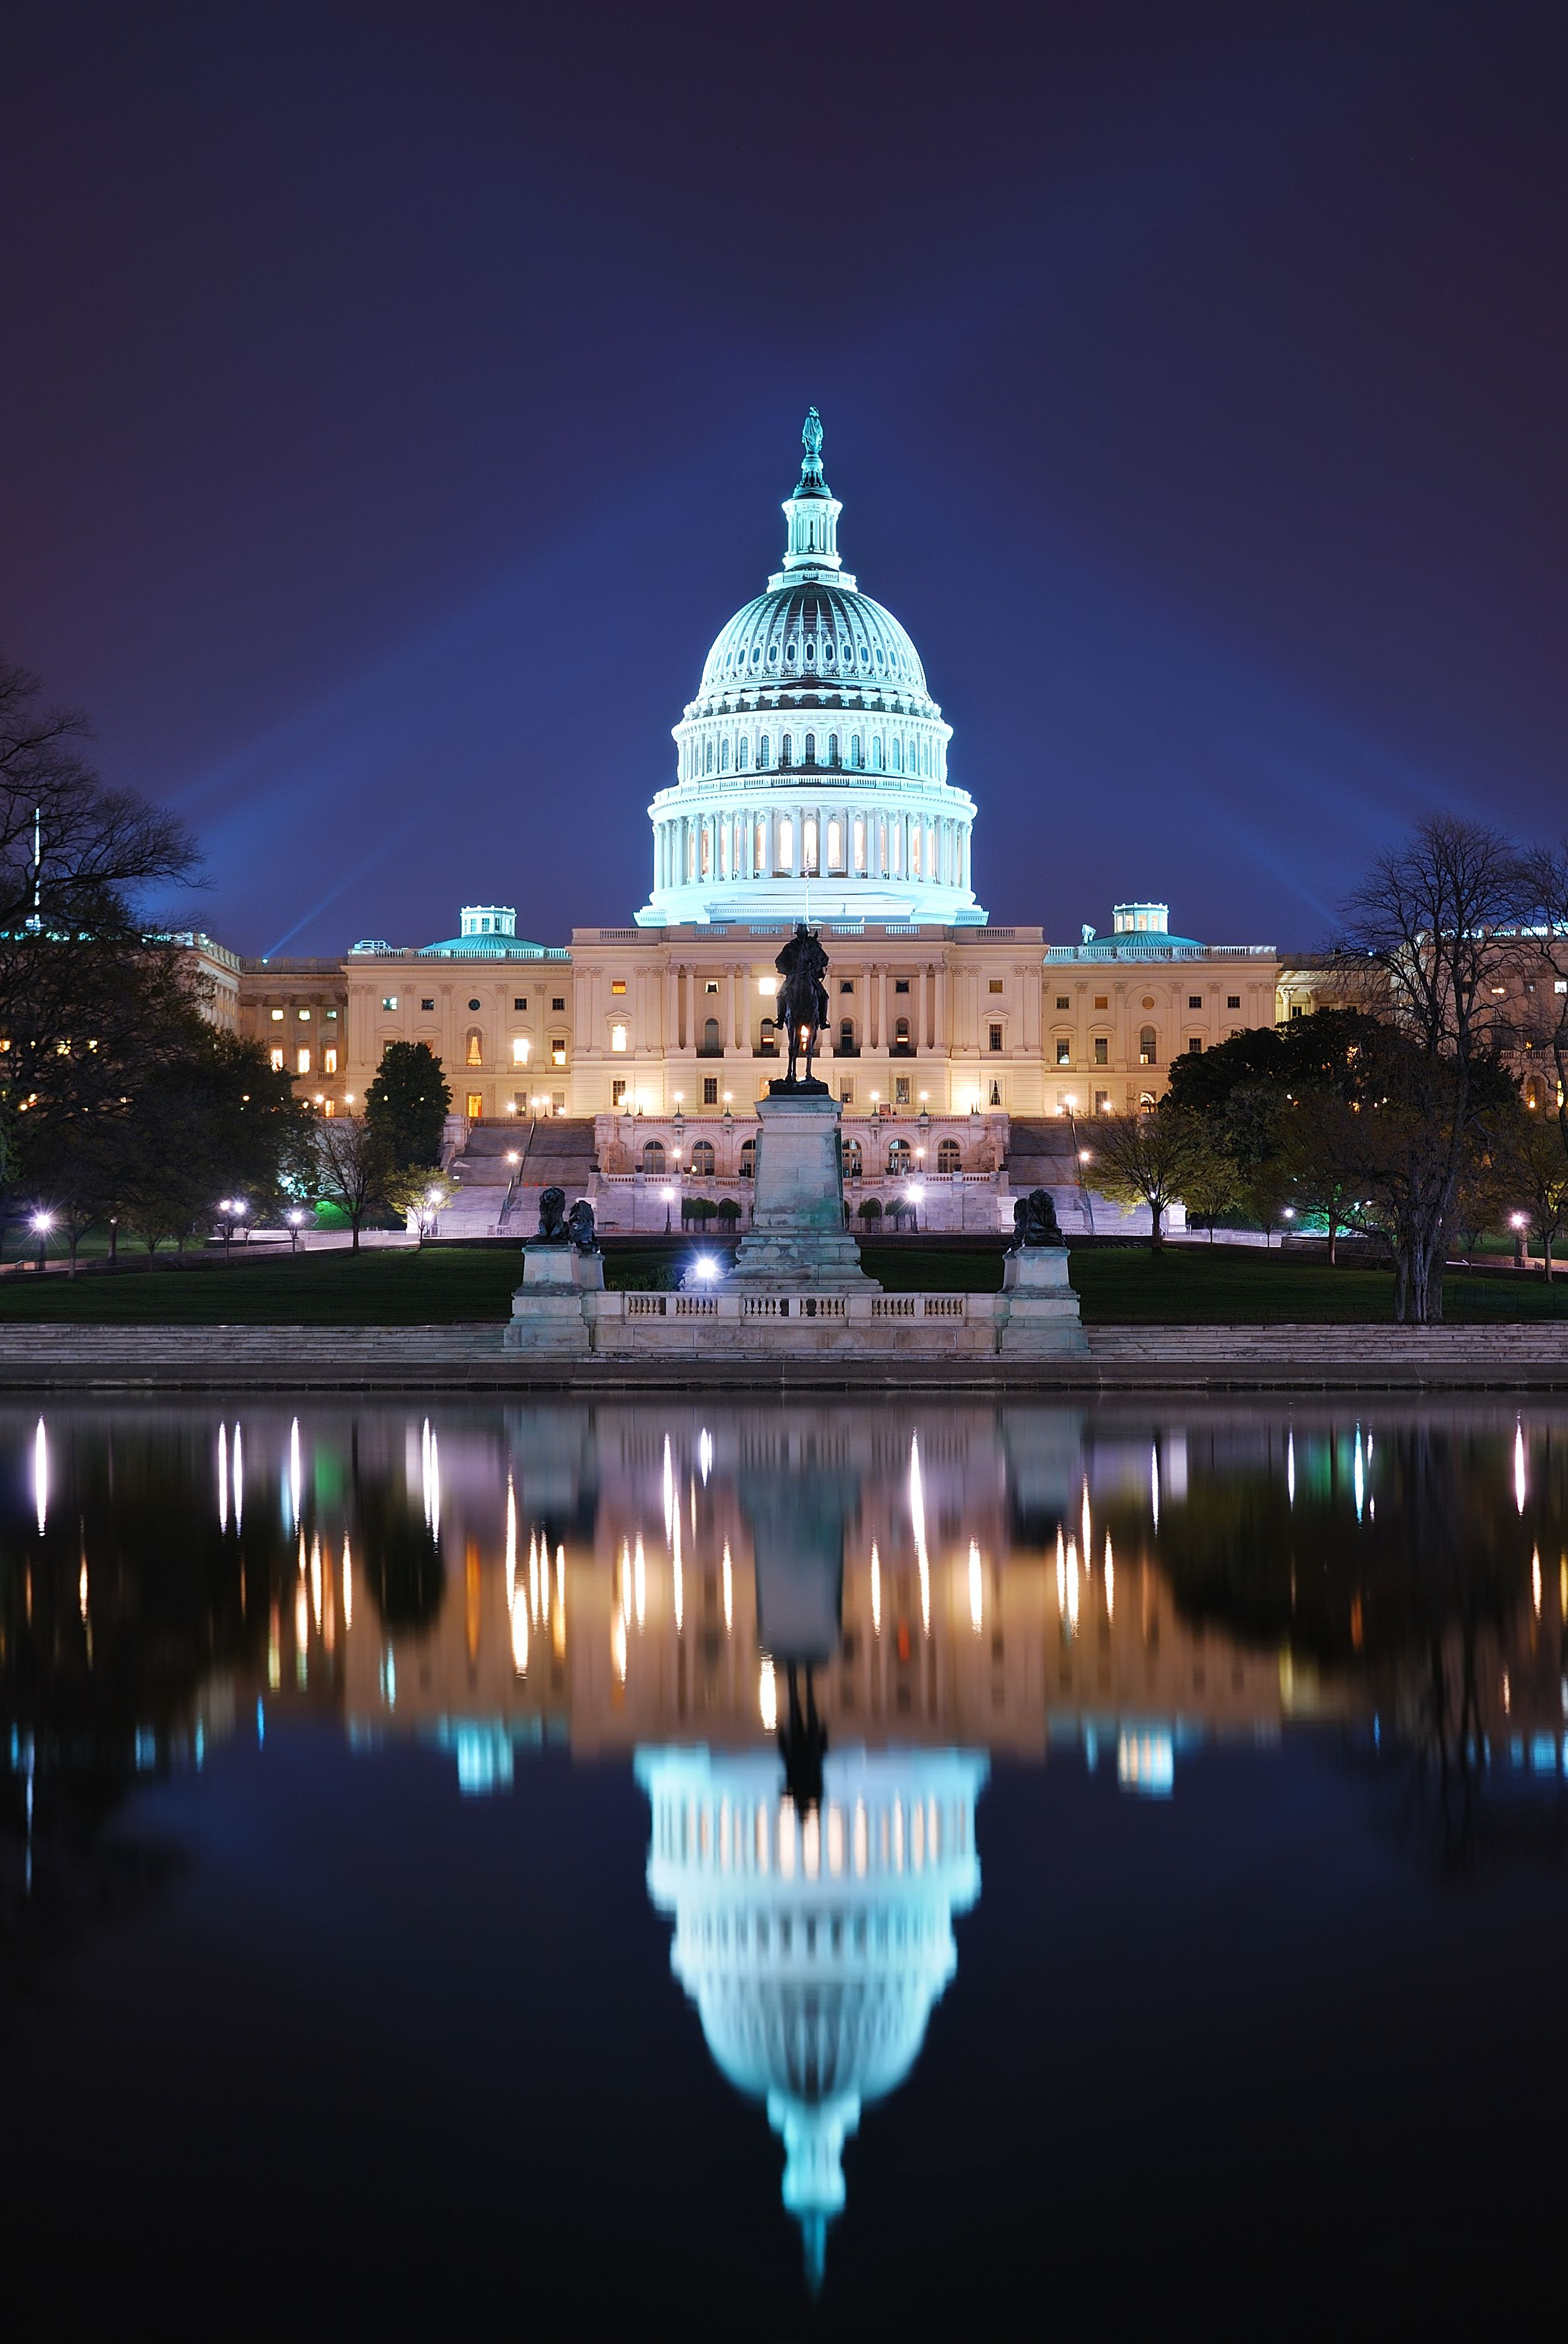 Park Art|My WordPress Blog_When Is Next State Of The Union 2021